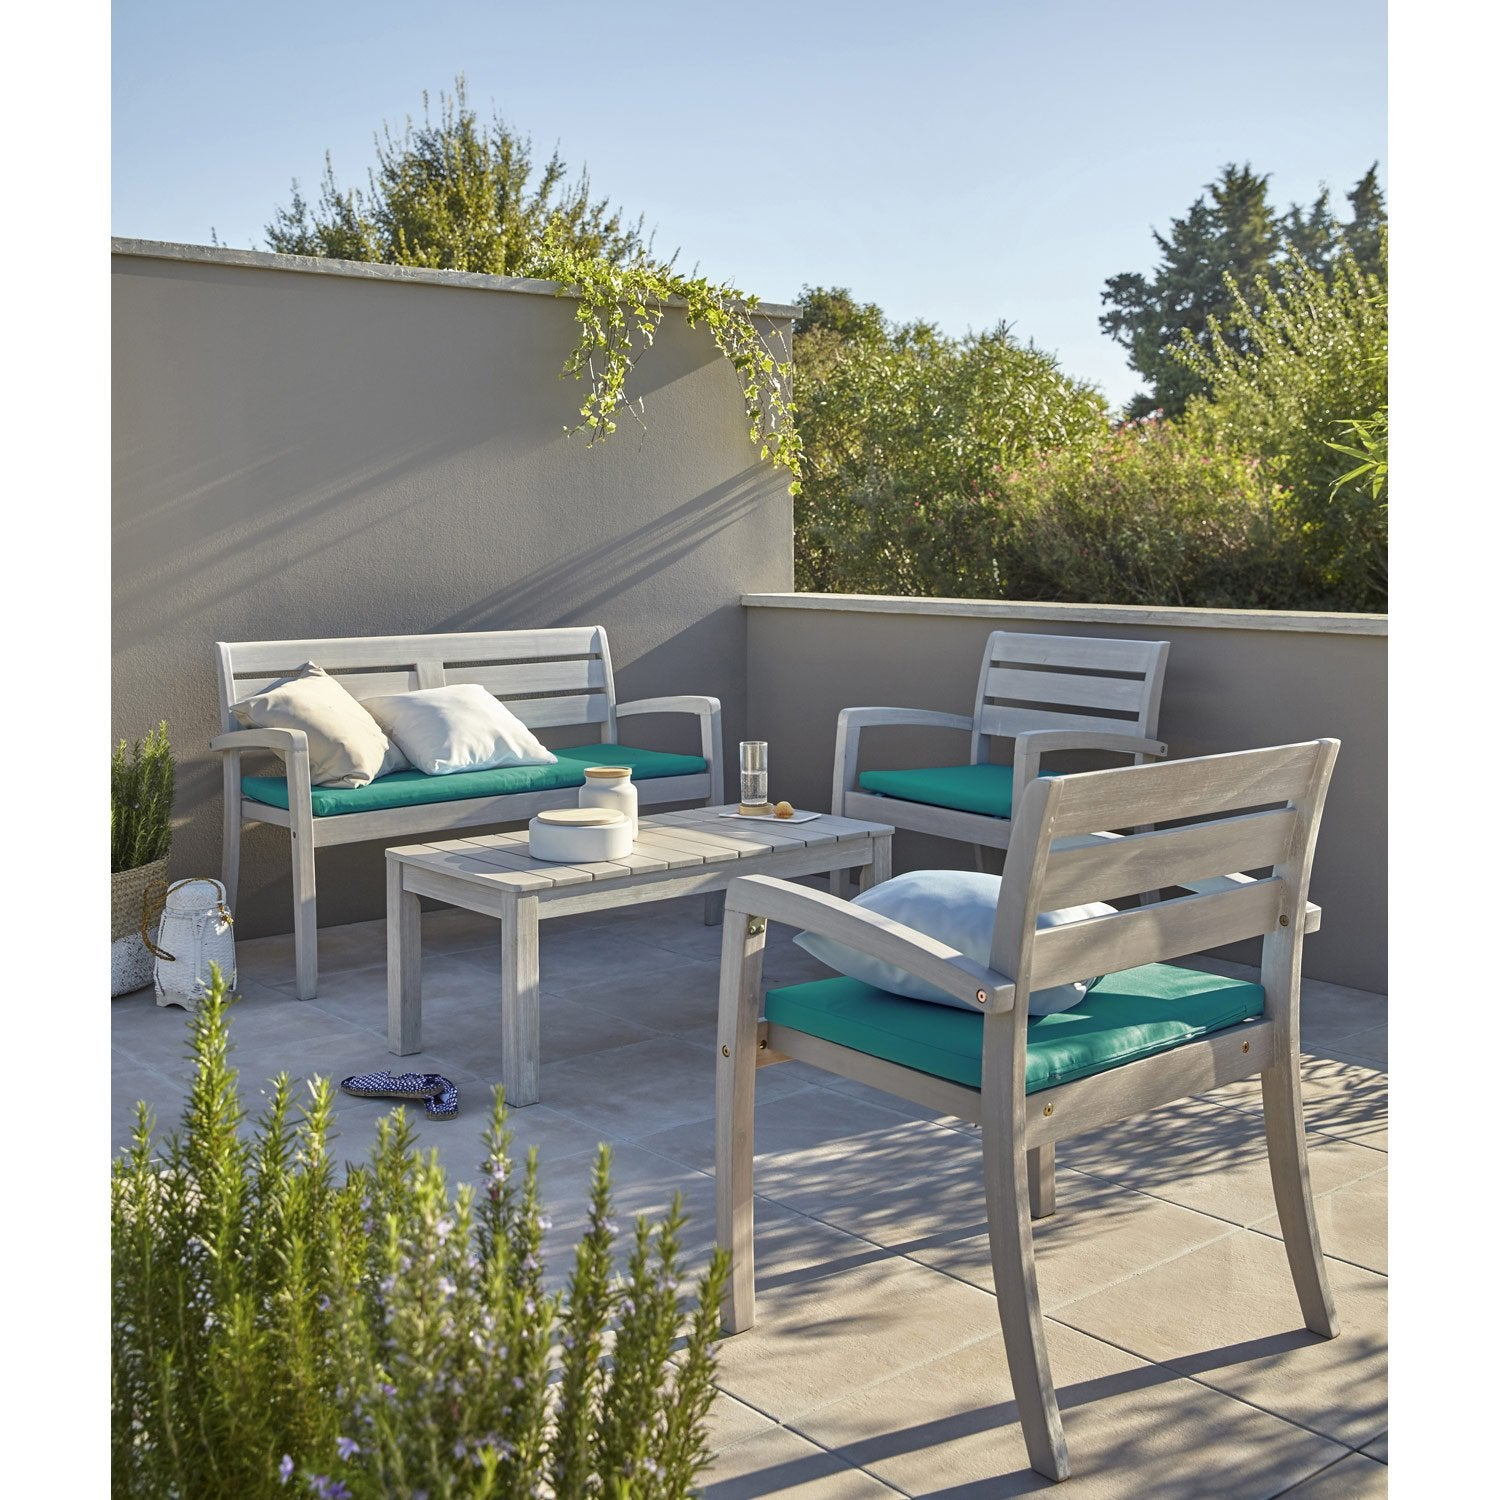 Salon de jardin portofino bois naturel 1 table 2 for Ocultacion jardin leroy merlin